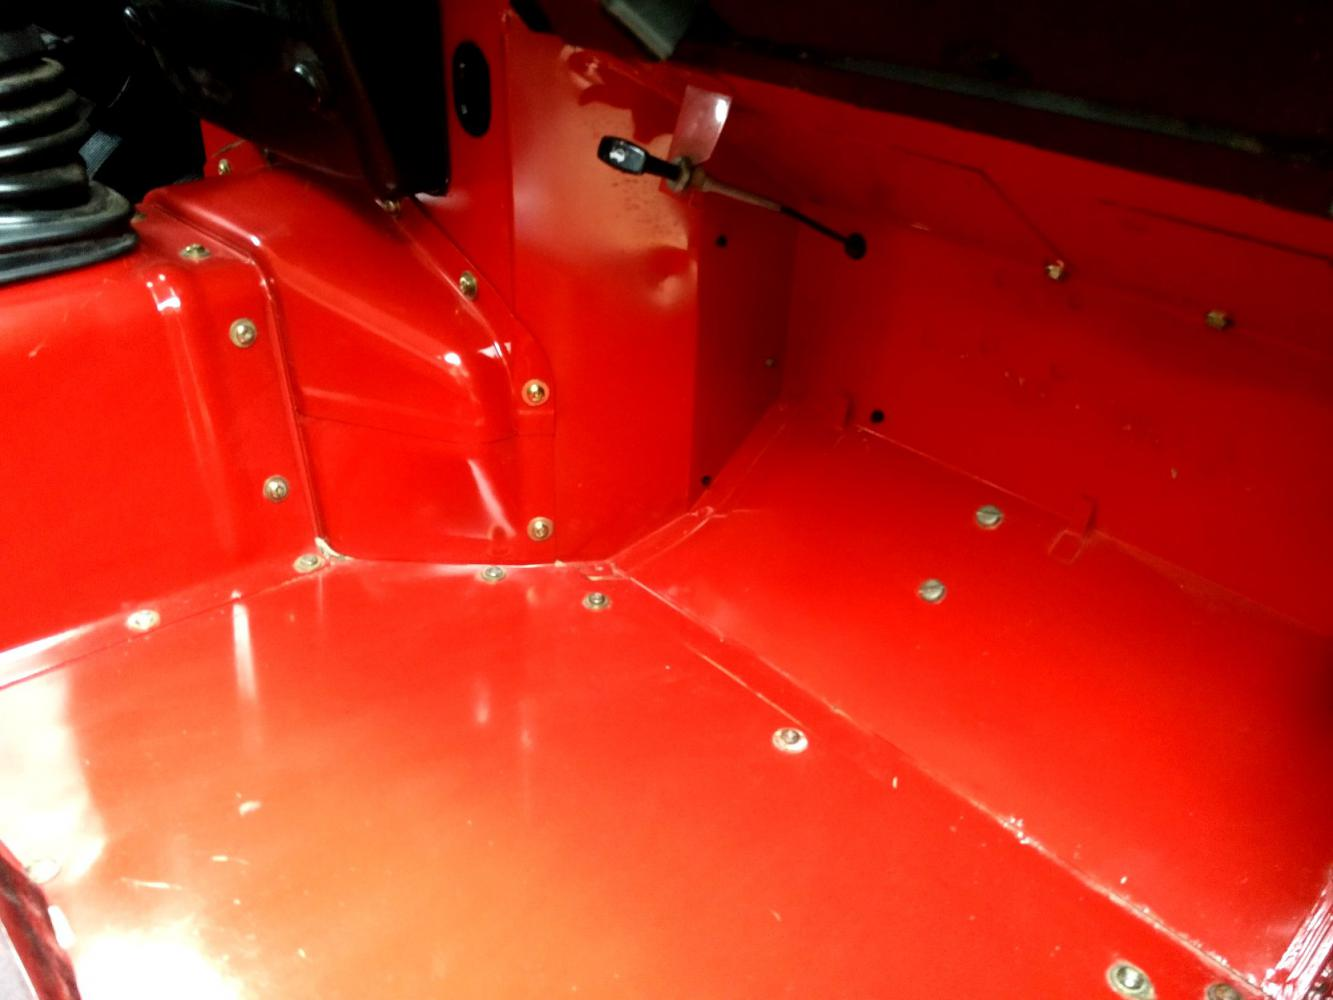 Click image for larger version  Name:1992 LR LHD Defender 90 Red 200 Tdi interior floorpan pass clean.jpg Views:214 Size:78.3 KB ID:263690